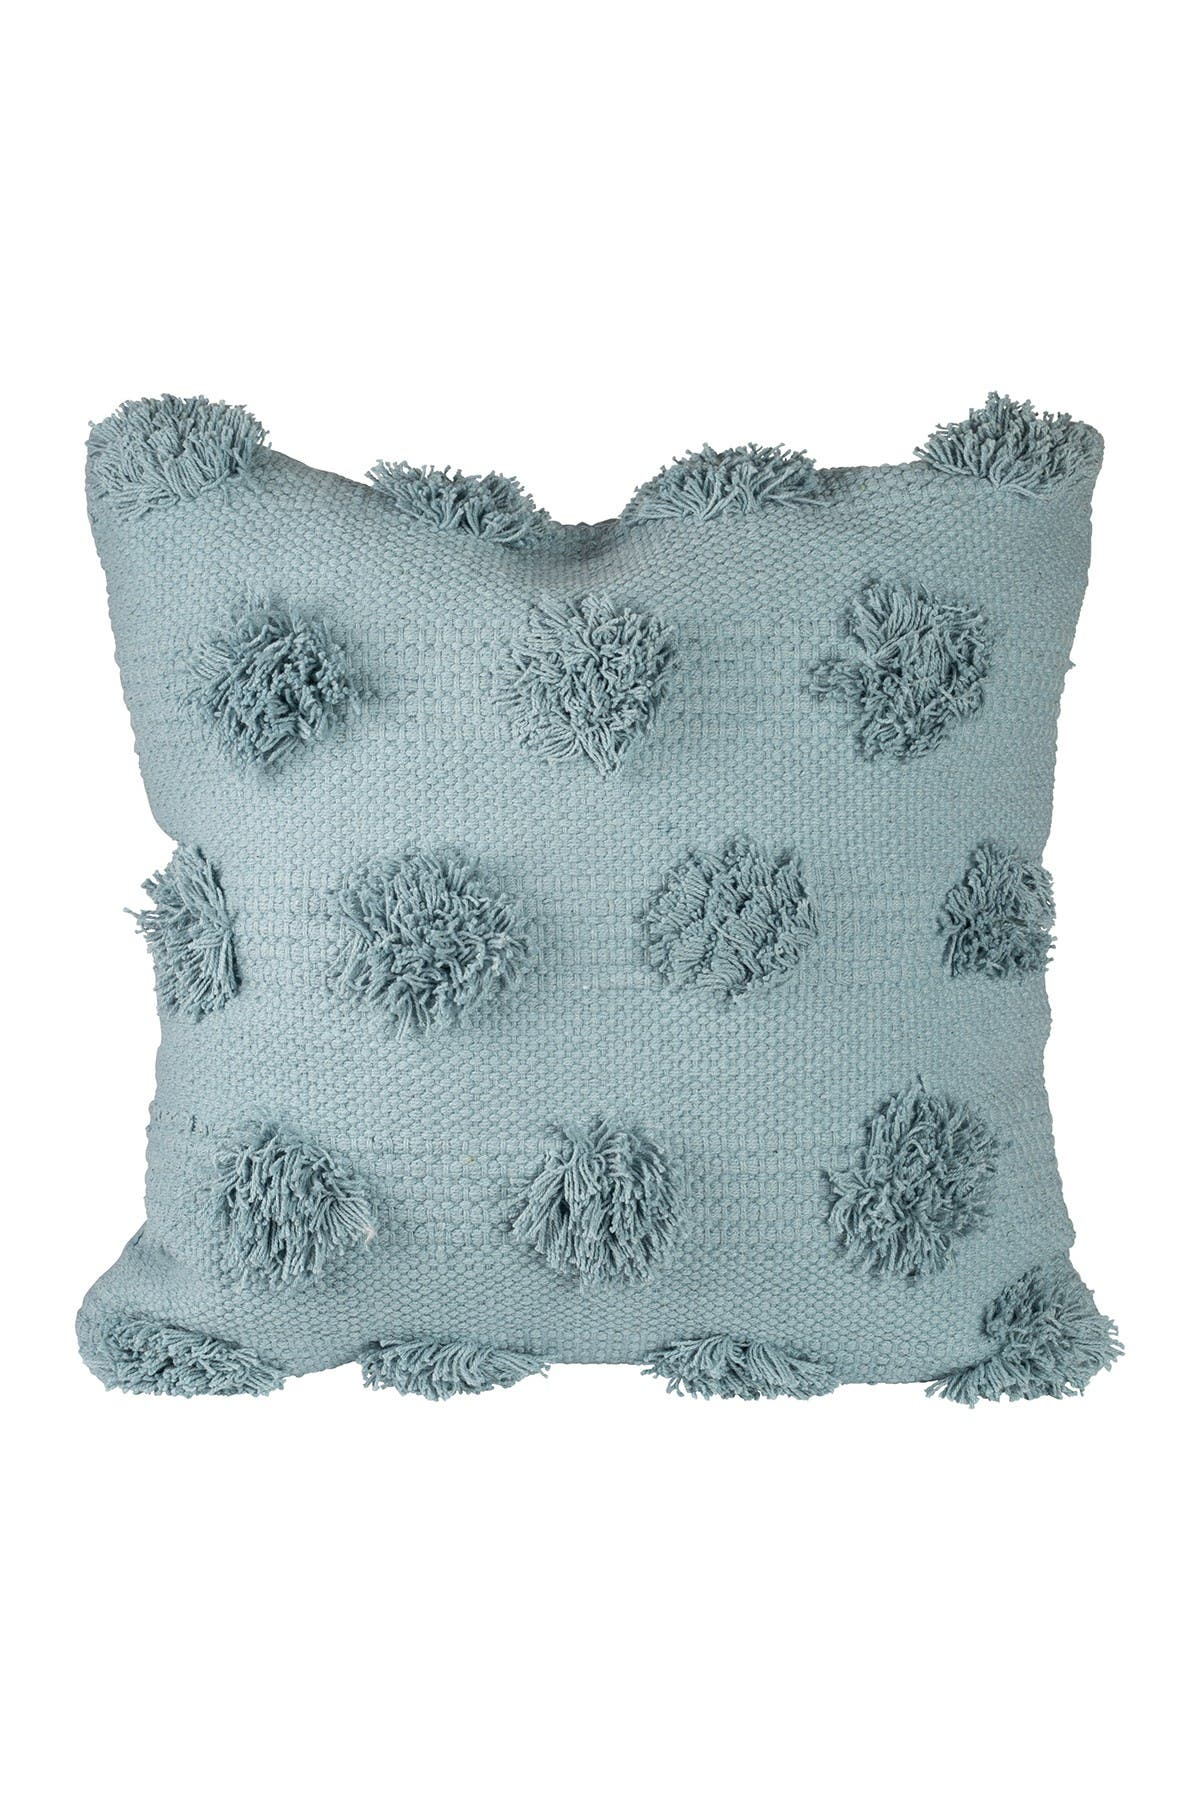 "Image of Home Essentials and Beyond Blue Textured Dot Pillow - 20"" x 20"""